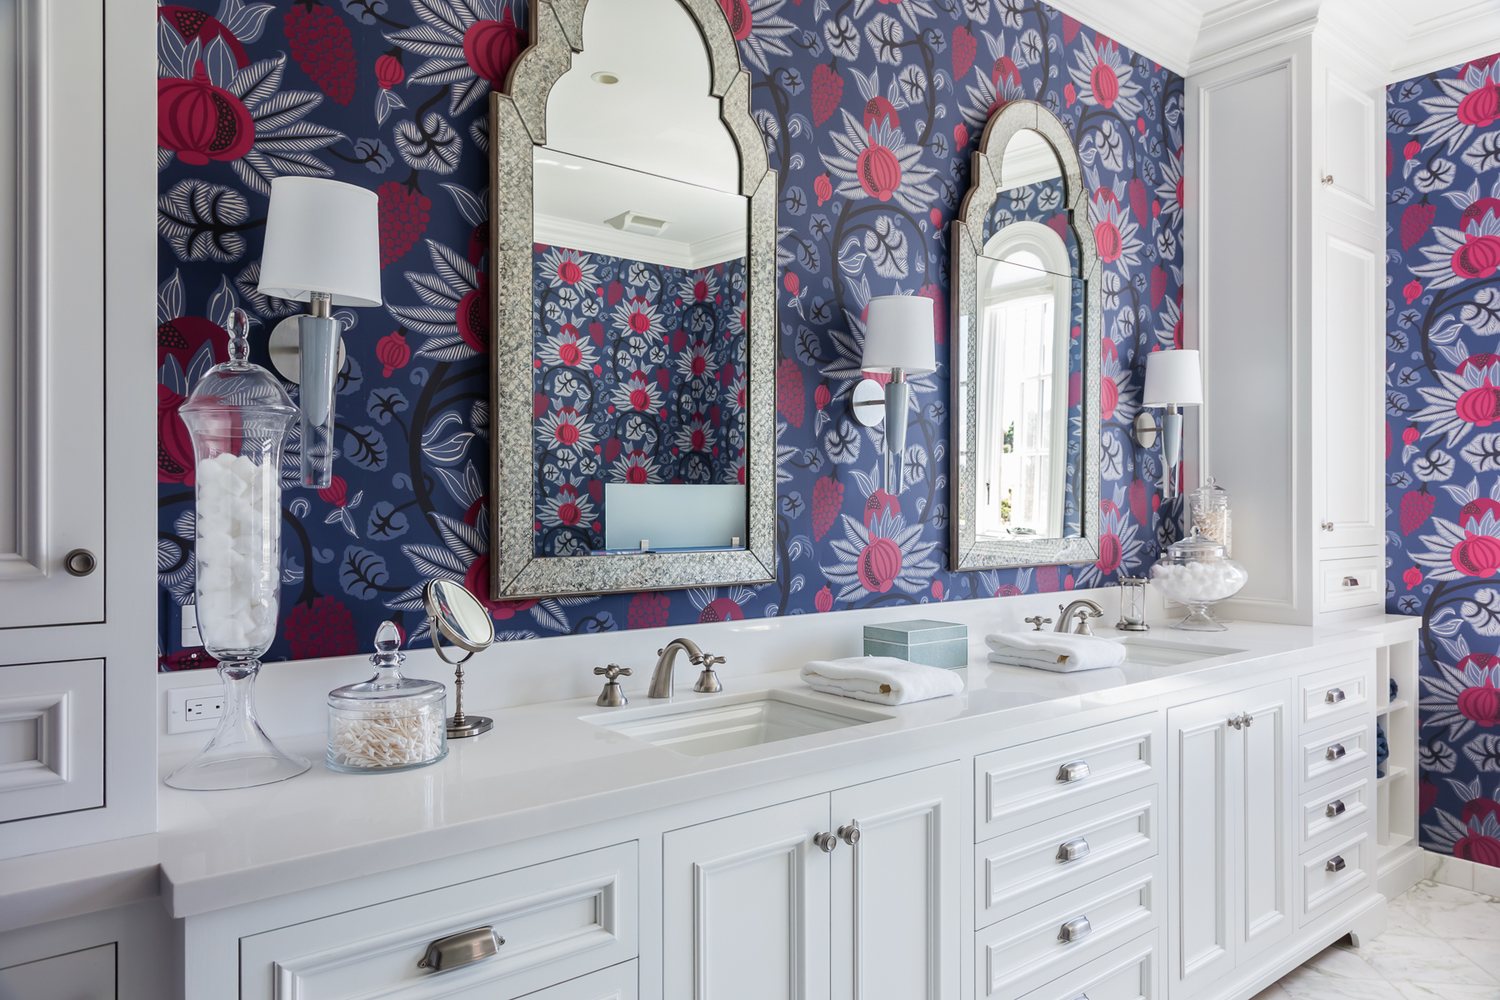 Grasse Sconce bathroom_JL Interior Design_photo Catherine Nguyen 2.jpg